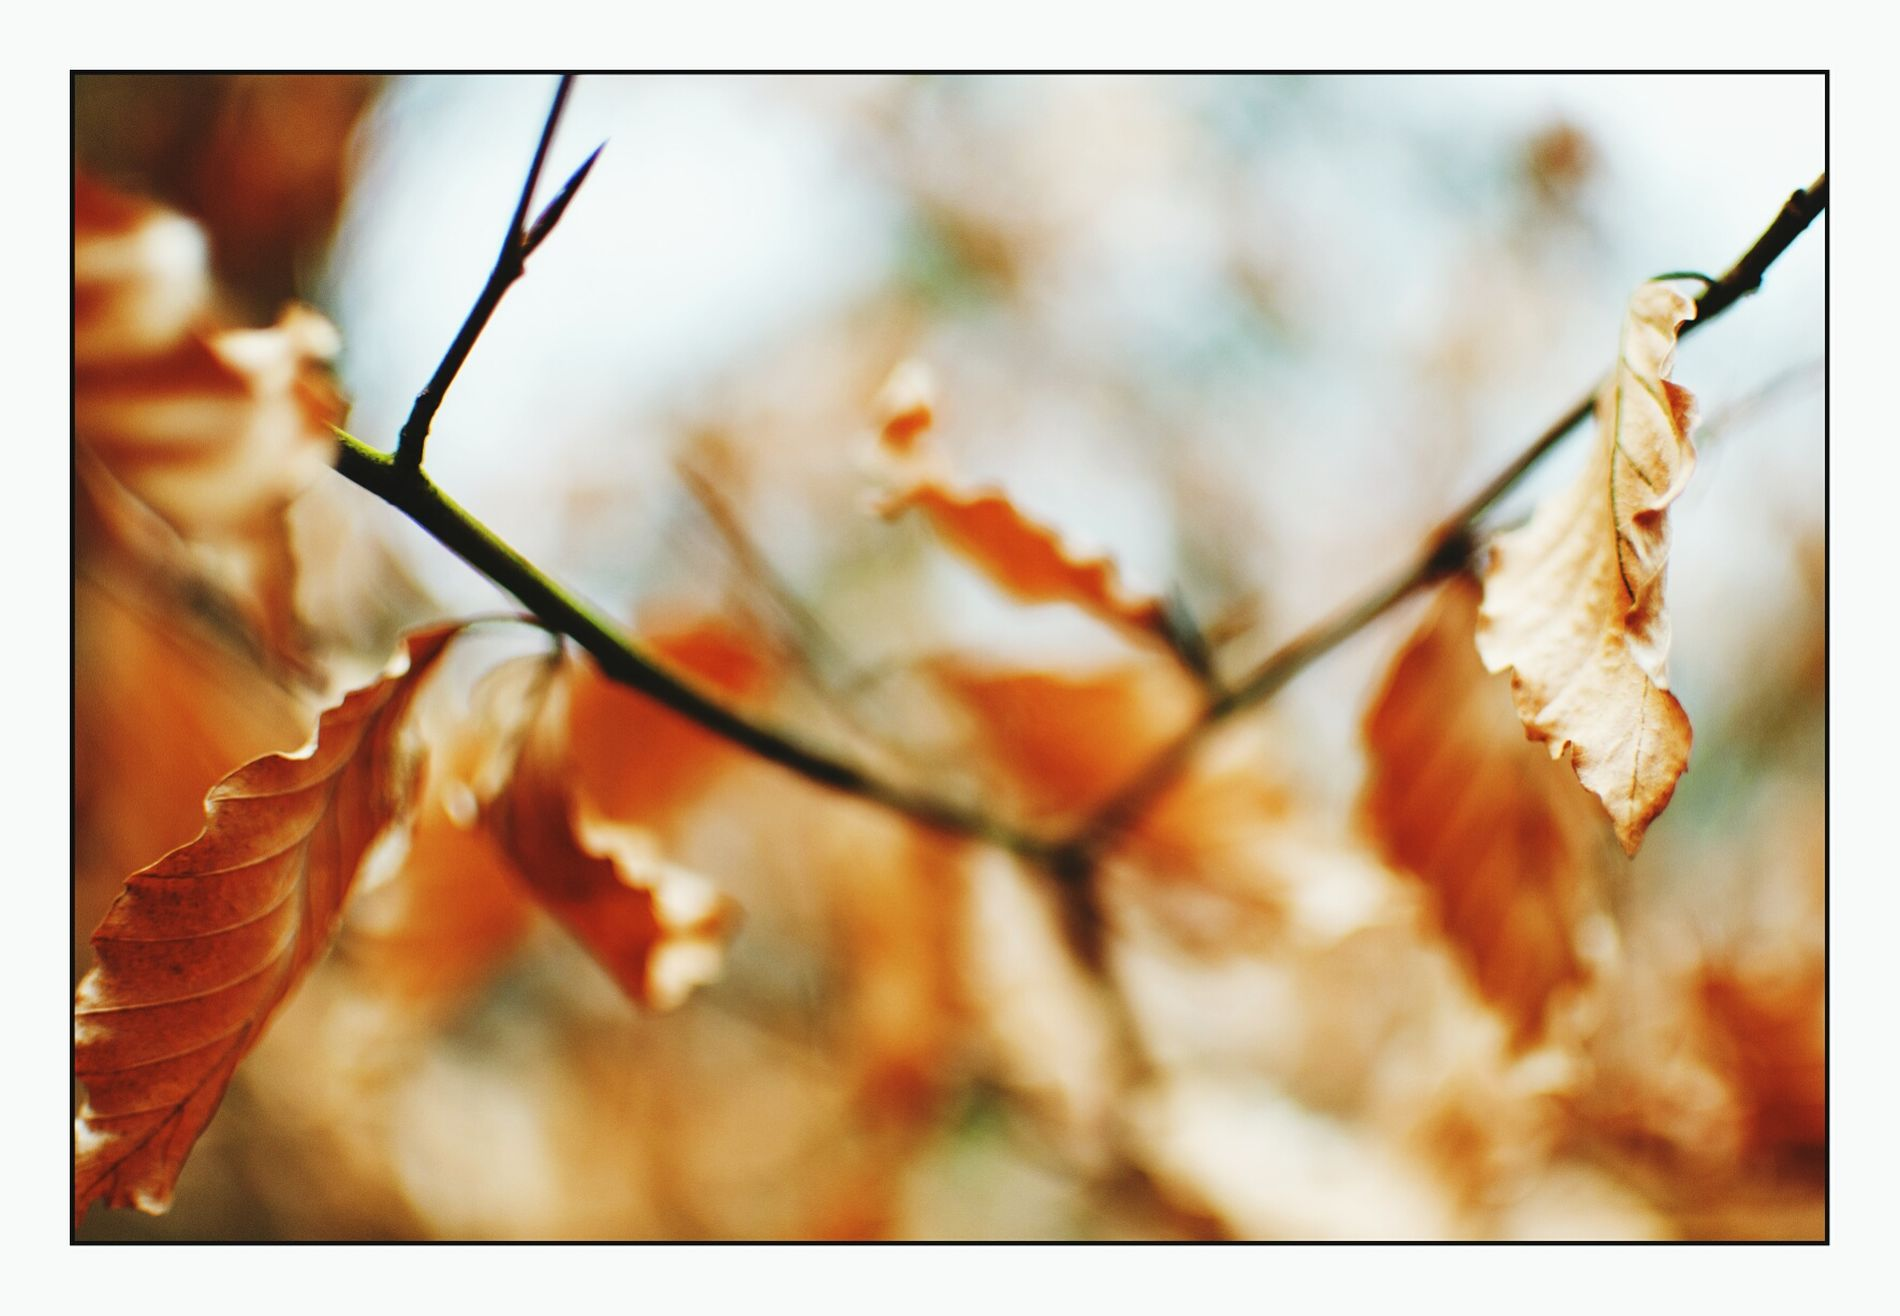 Nature at its best Nature EyeEm Nature Lover Leaves From My Point Of View Colors Nikon D7000 Dof 35 1.8